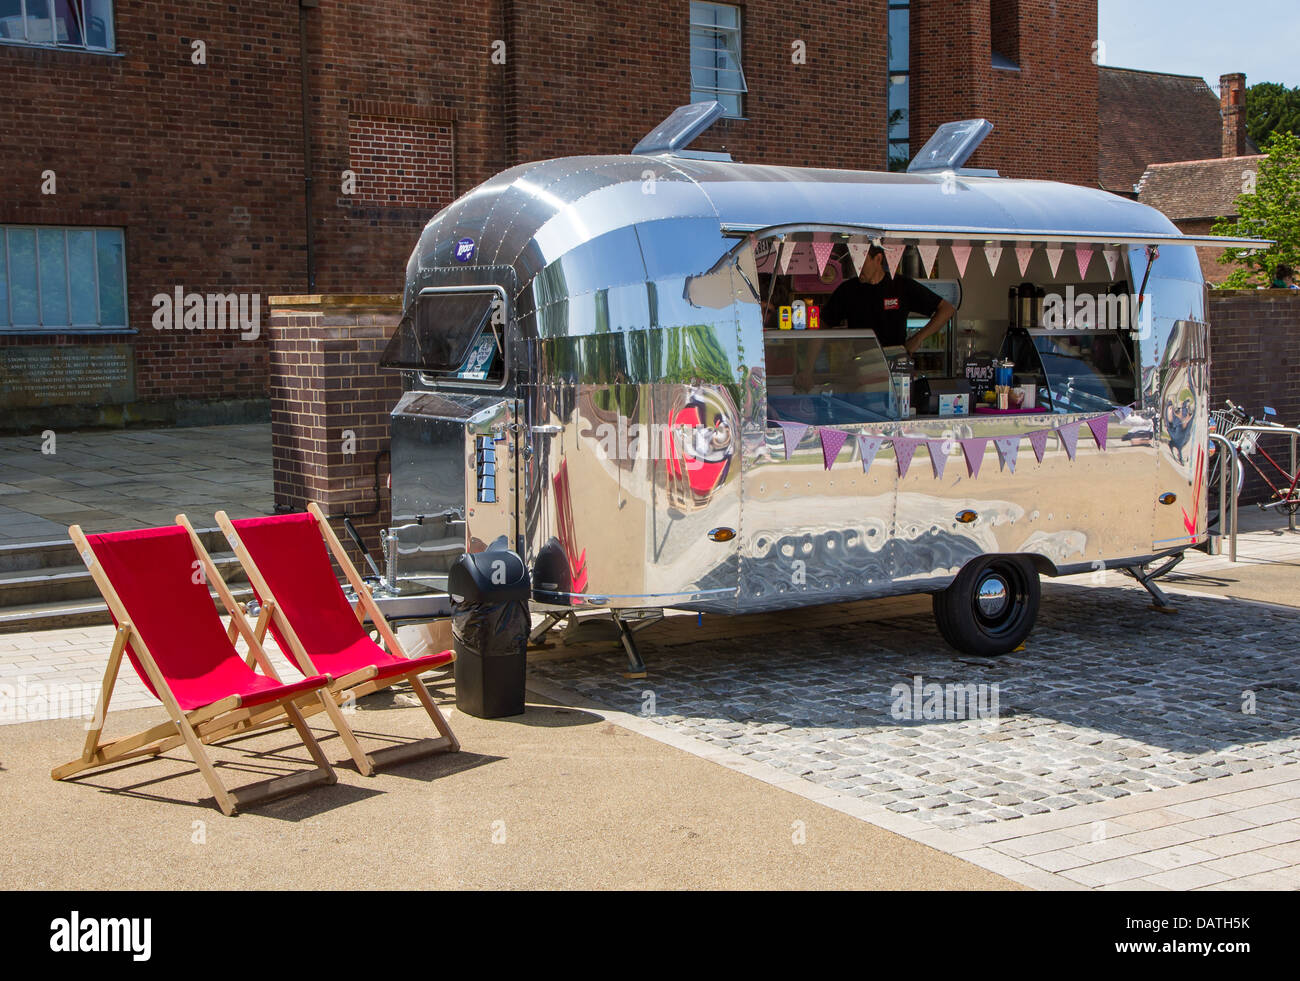 Retro catering trailer outside the Royal Shakespeare Theatre in Stratford Upon Avon - Stock Image